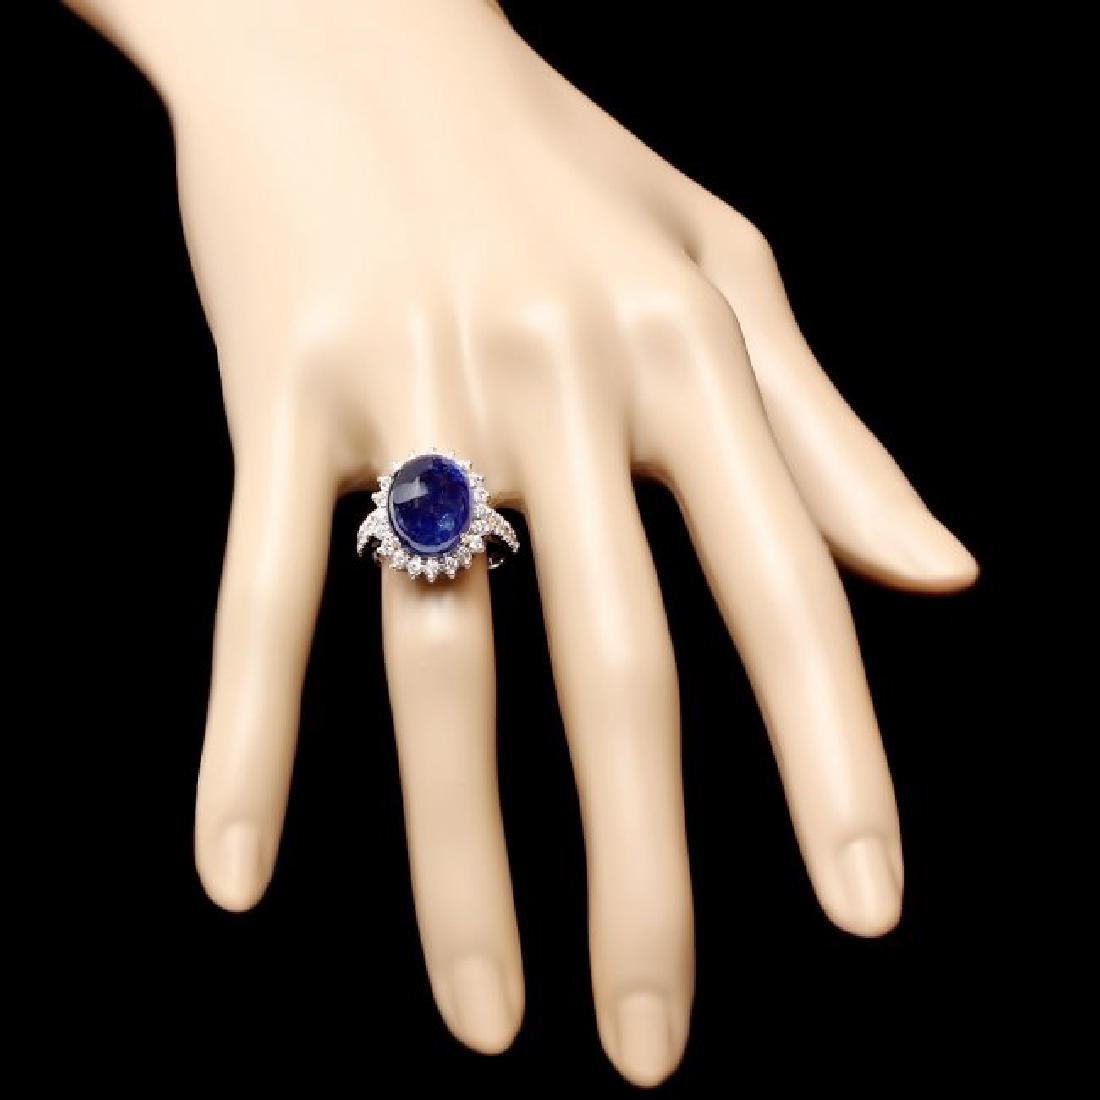 14k Gold 11.50ct Sapphire 1.20ct Diamond Ring - 4